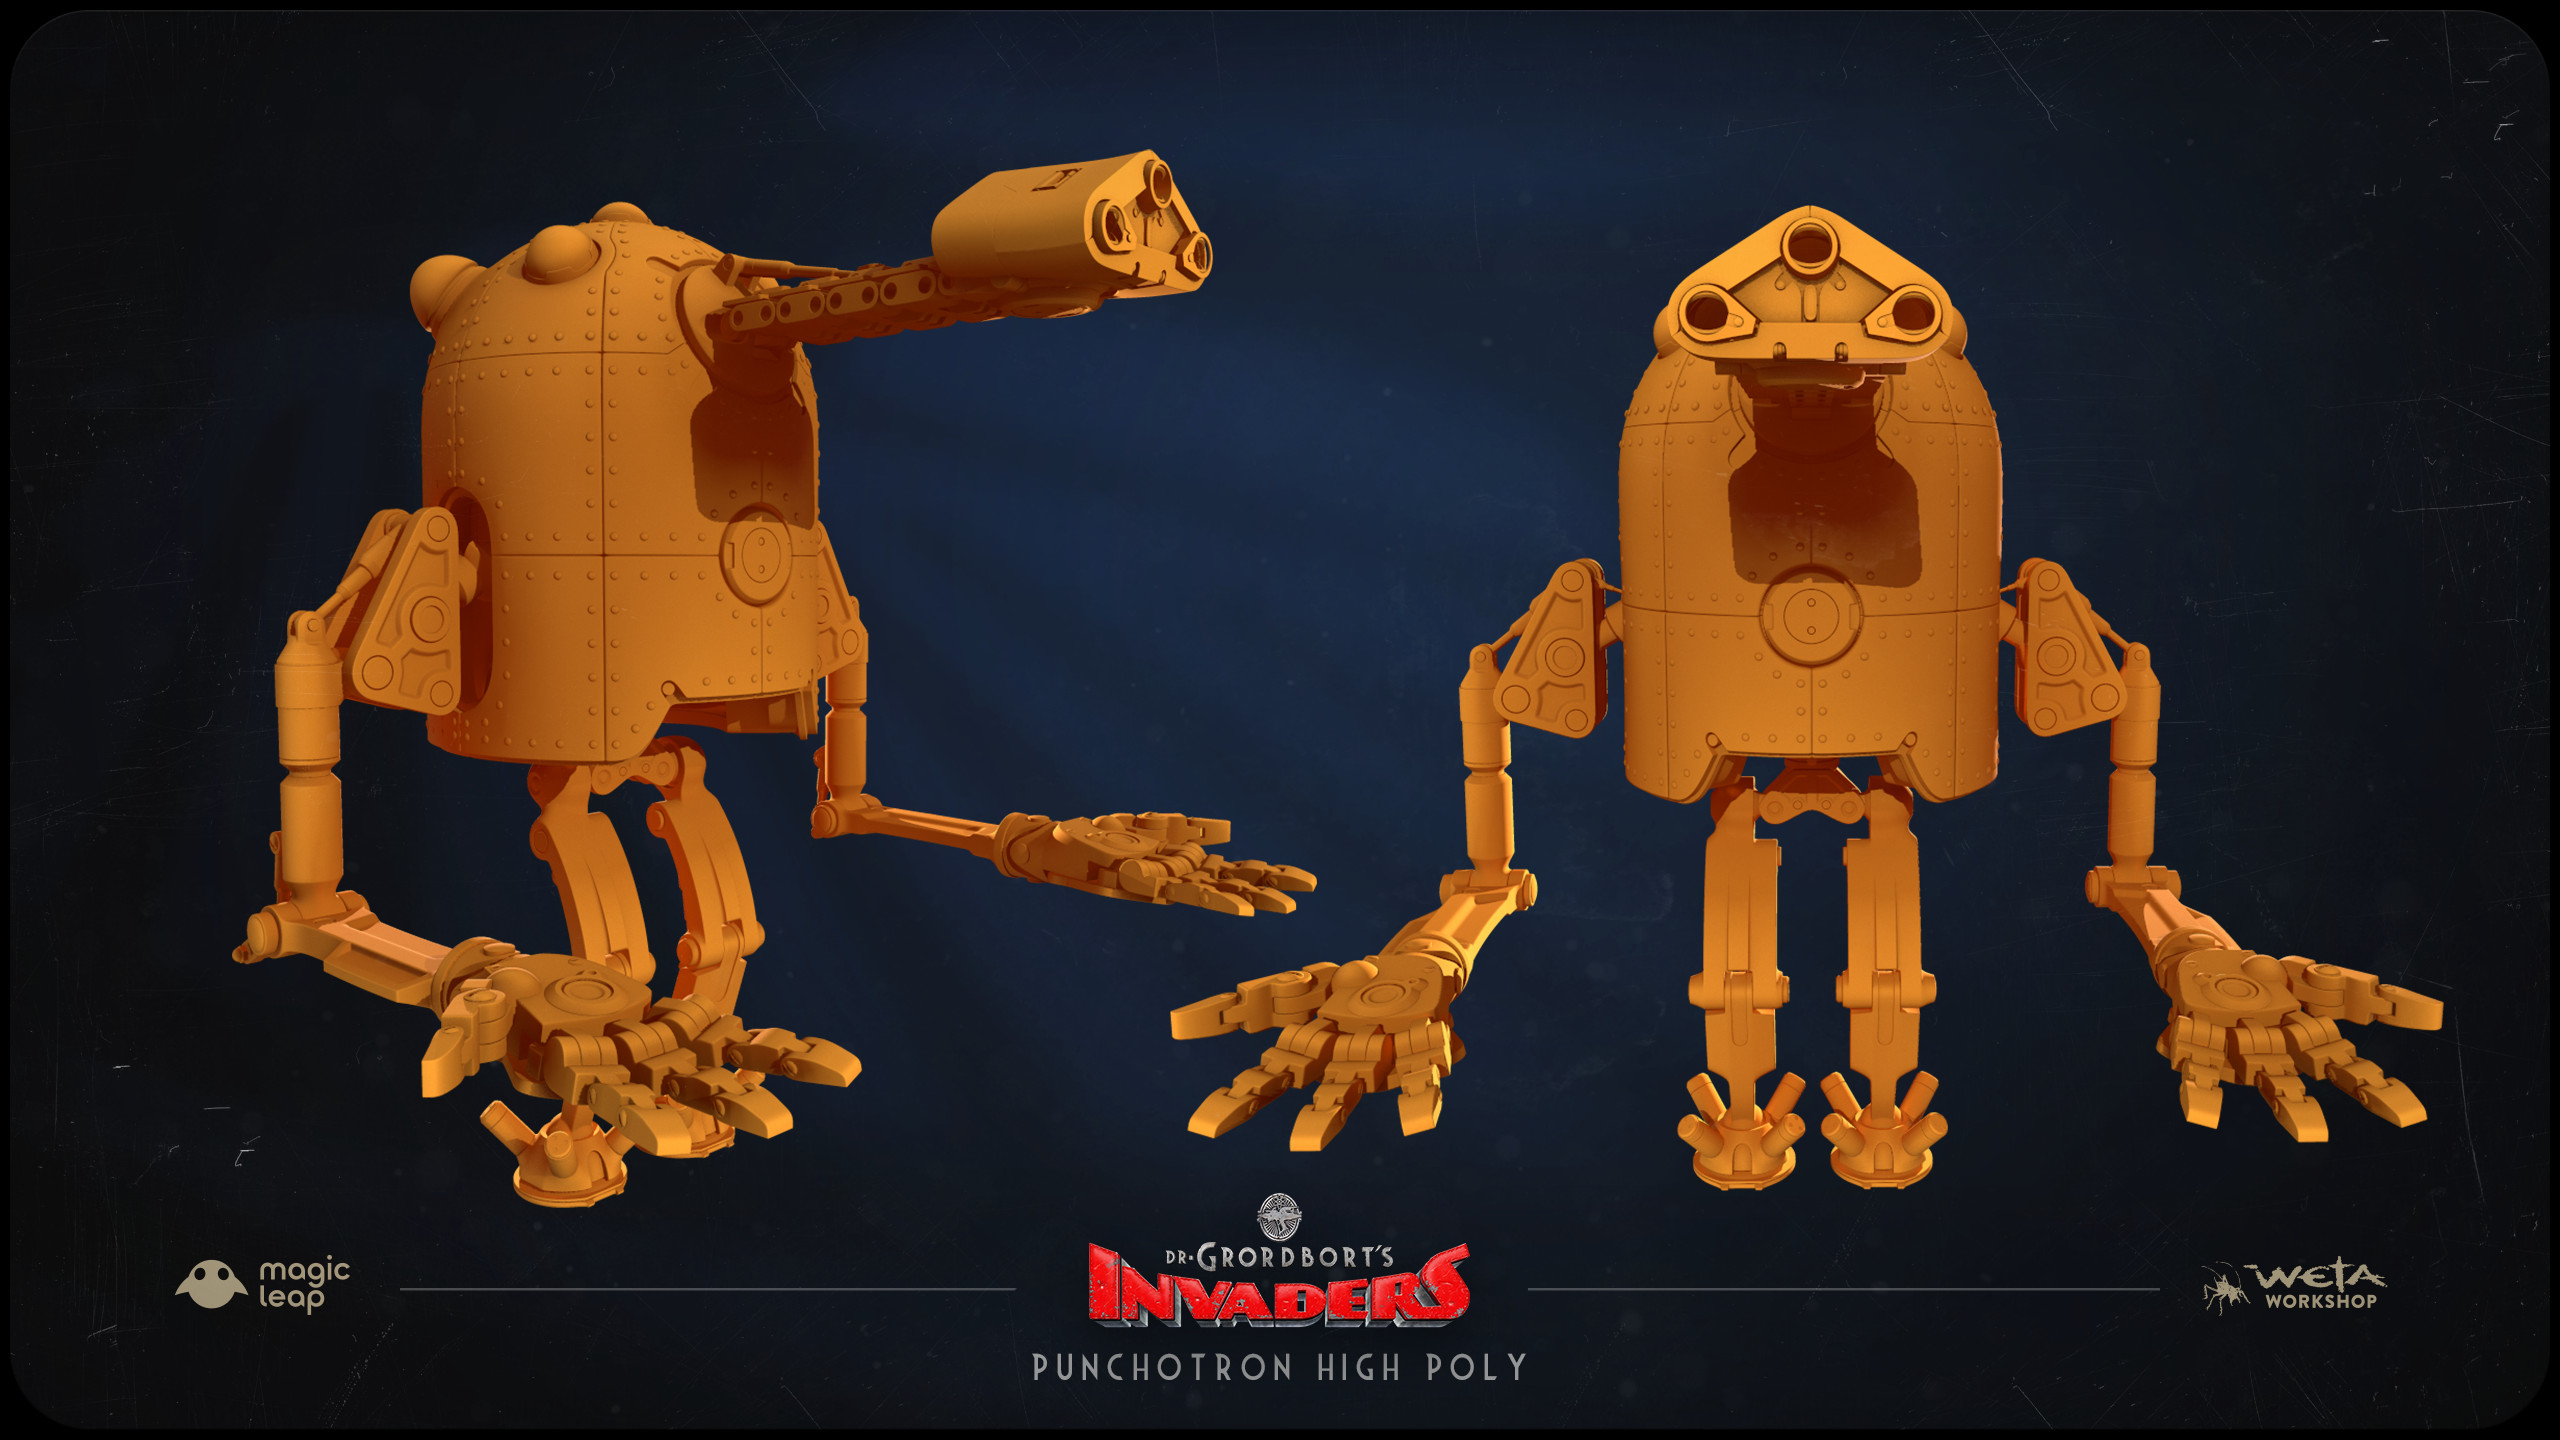 Designs by Greg Broadmore and Stephen Lambert High and Low poly models by Jesse Barratt and Stephen Lambert.